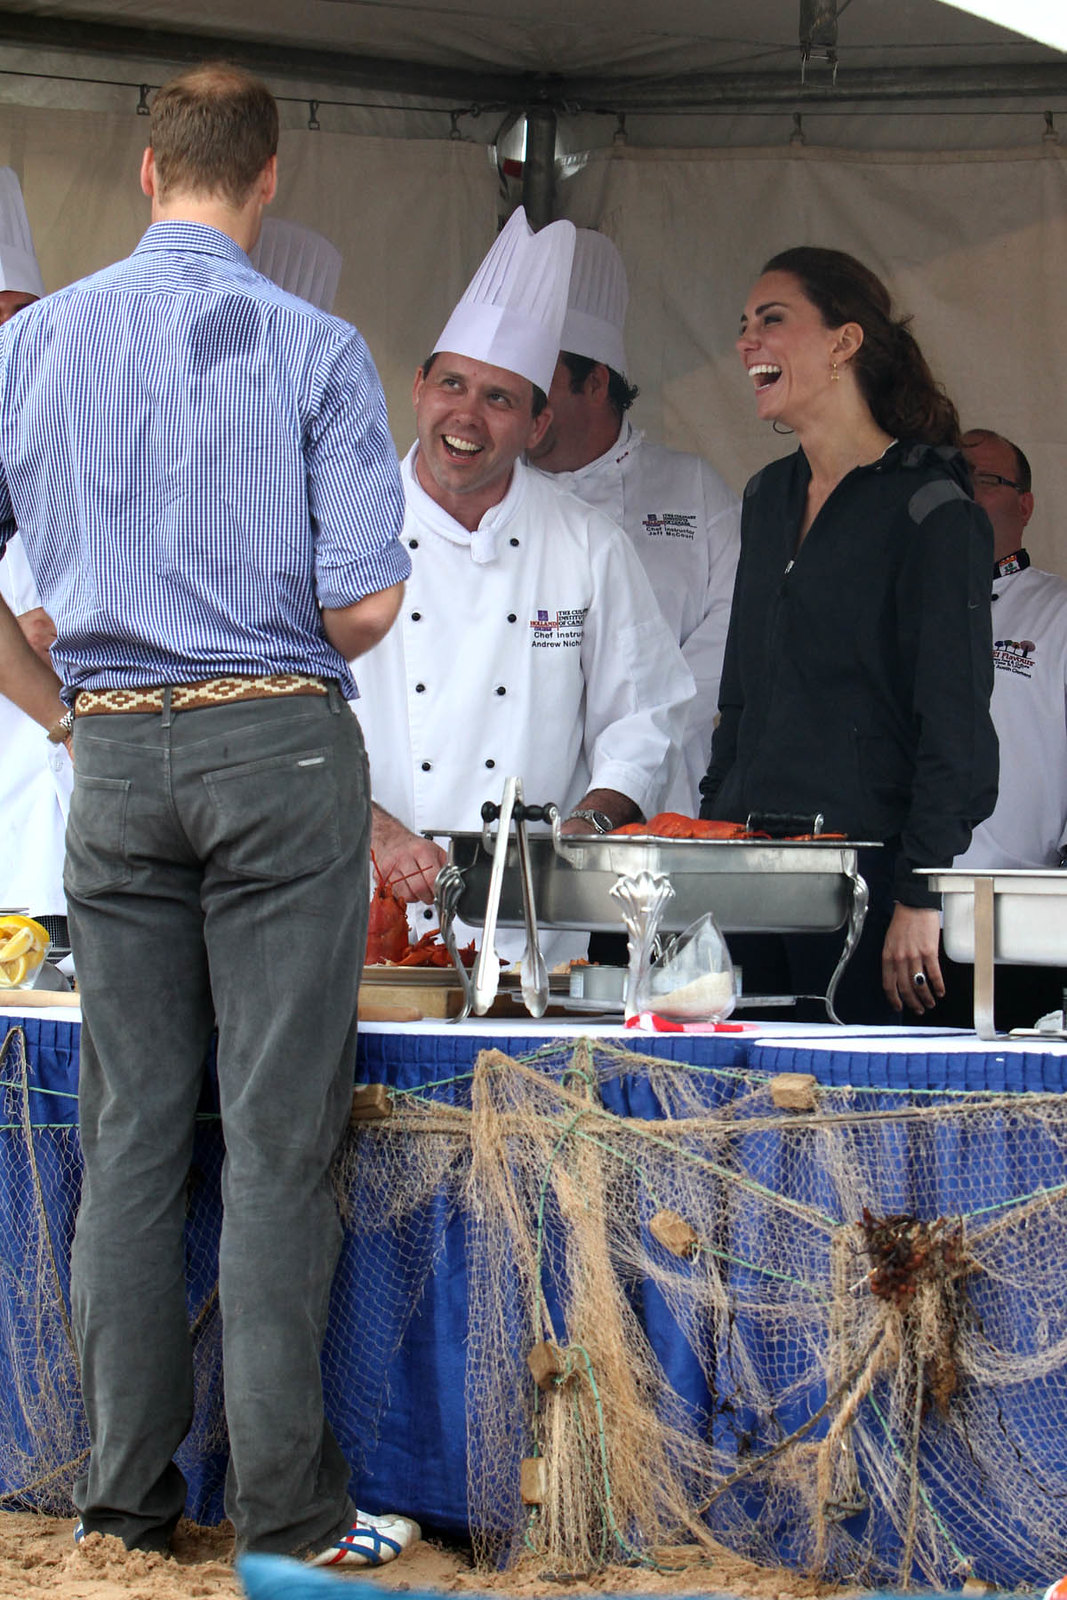 William and Catherine tried many traditional dishes in PEI